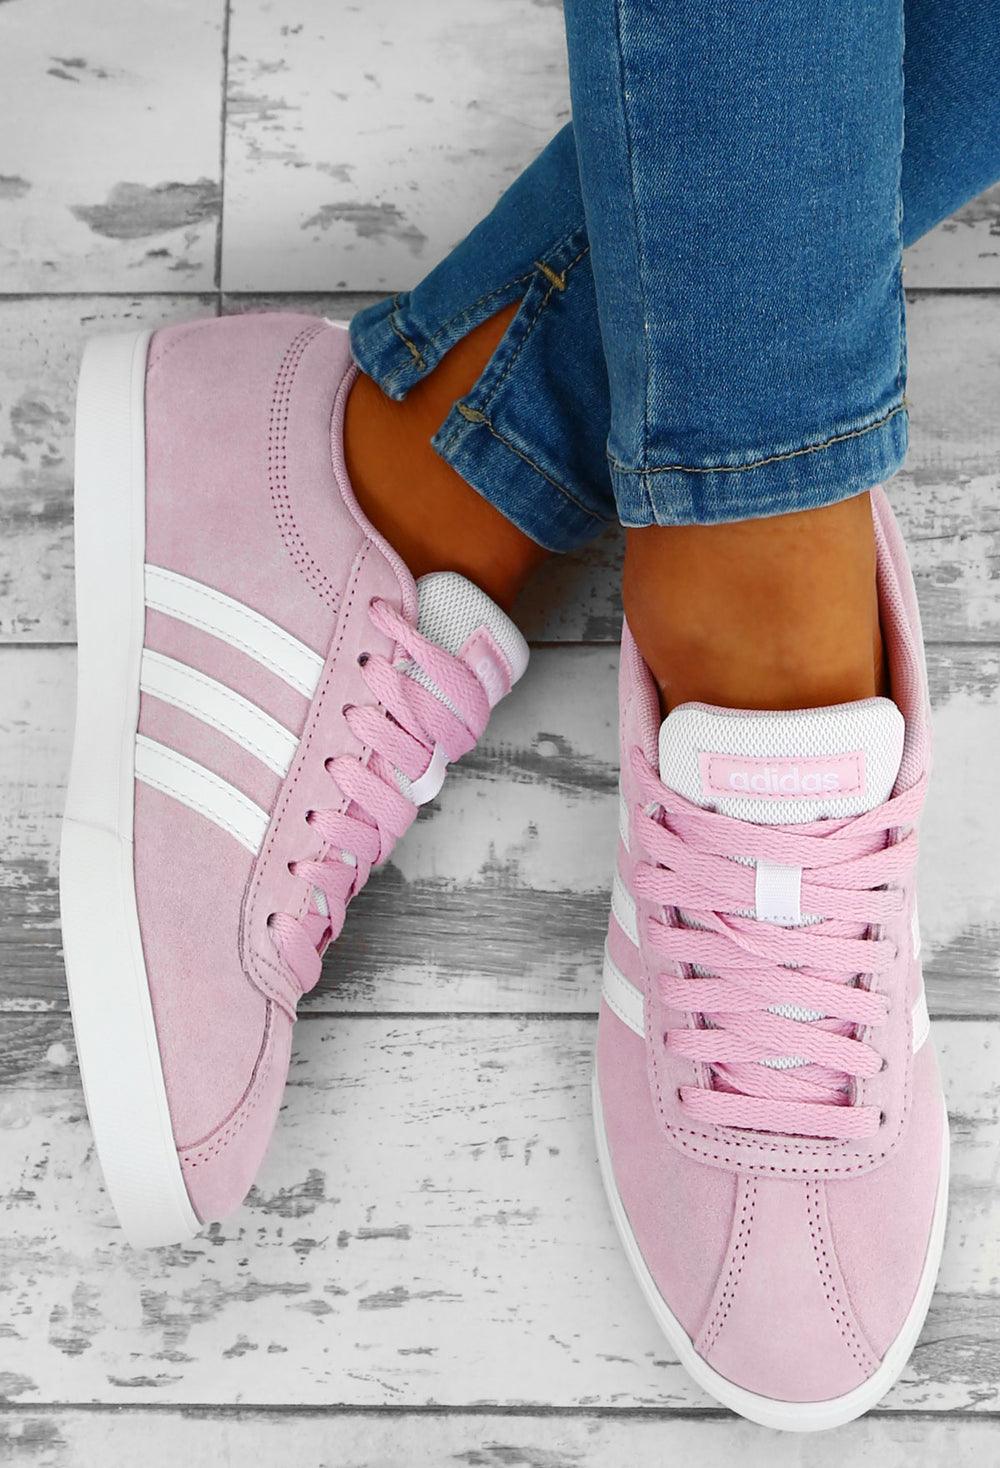 Adidas Pink Courtset Trainers – Pink